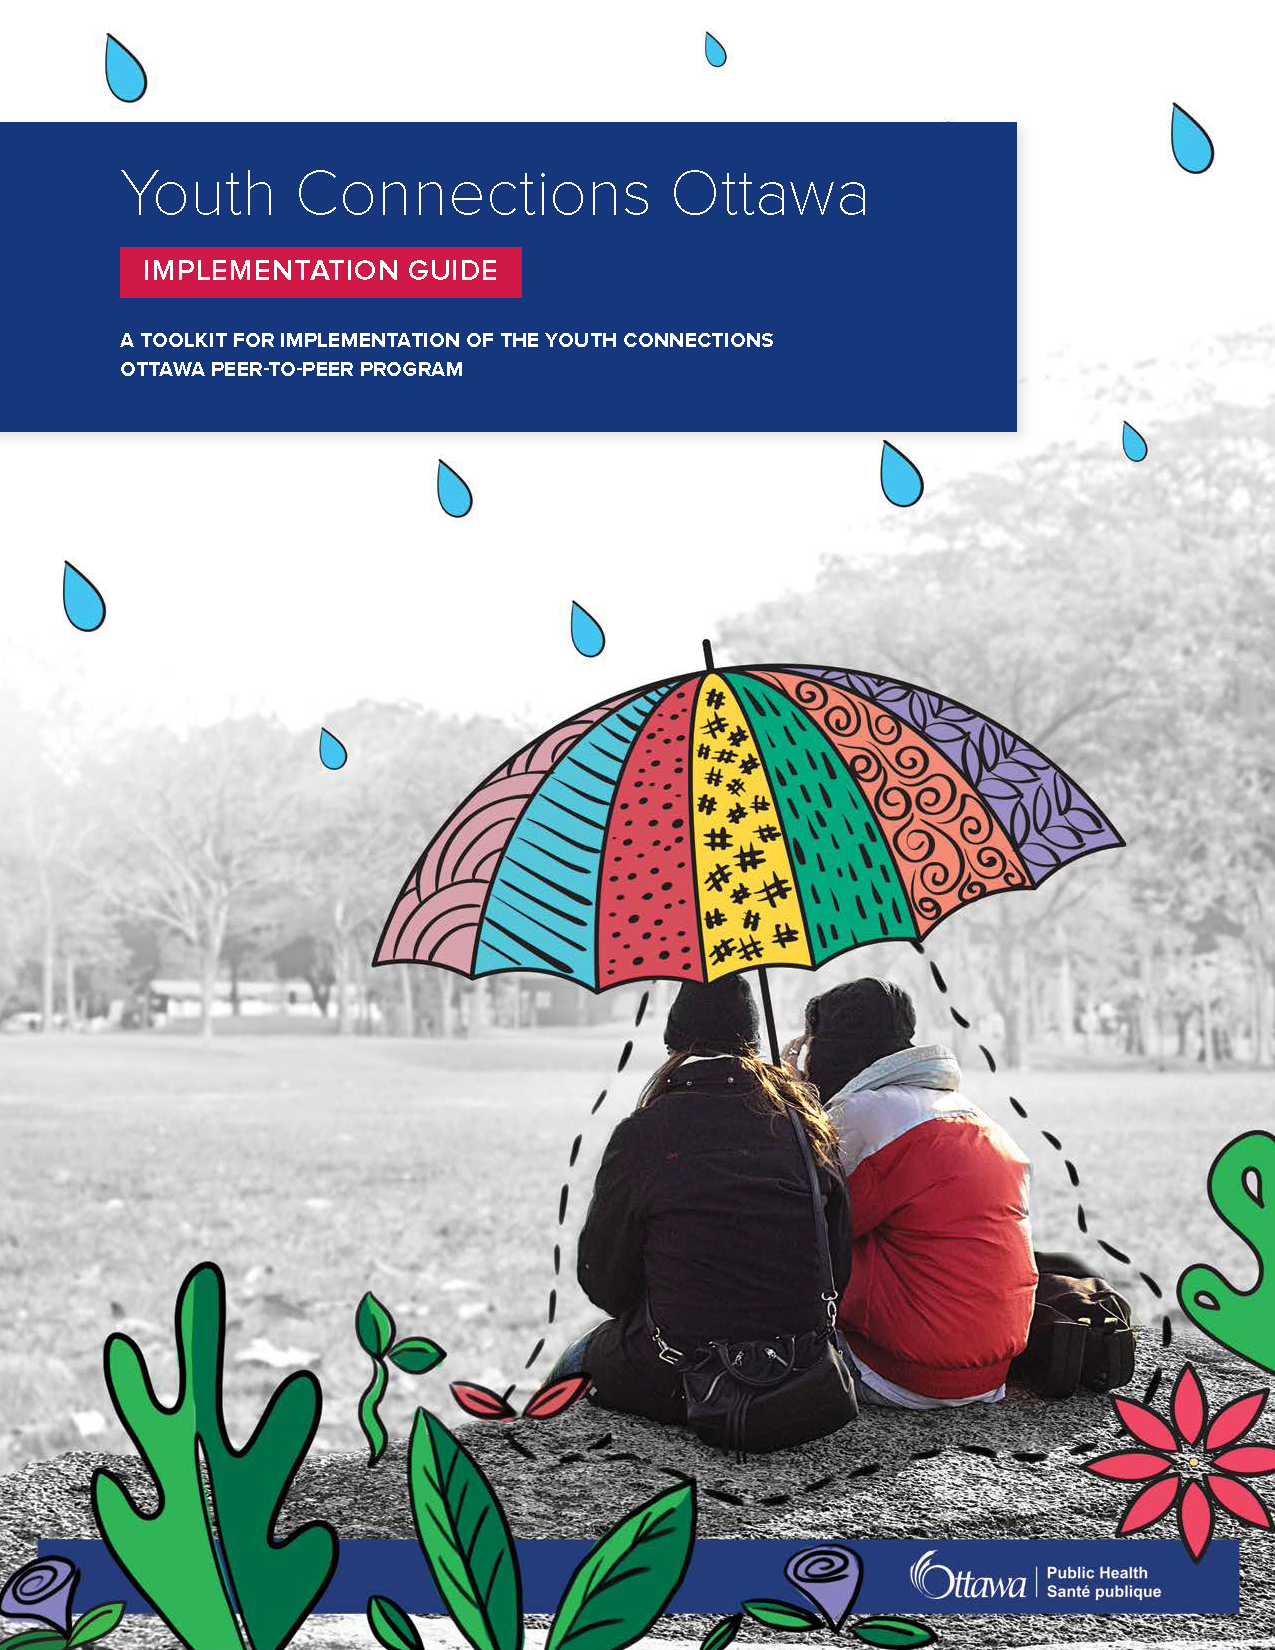 The cover image of the Youth Connection Ottawa Toolkit. Two people are sitting under a large umbrella with cartoon droplets falling on them